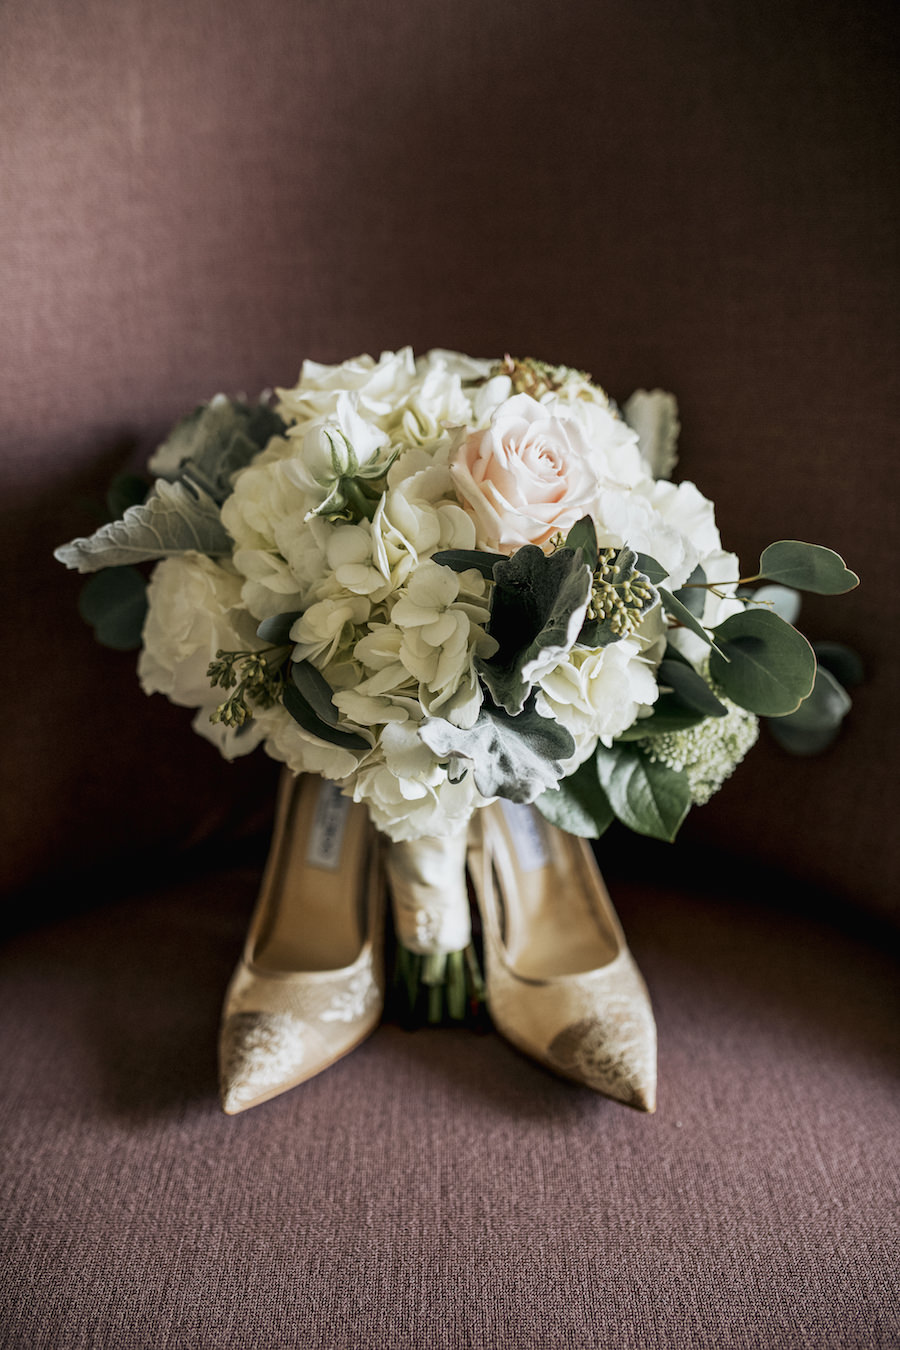 Bridal Bouquet with White Hydrangeas and Ivory and Blush Roses with Neutral Lace Wedding Heels   Tampa Bay Wedding Planner NK Productions